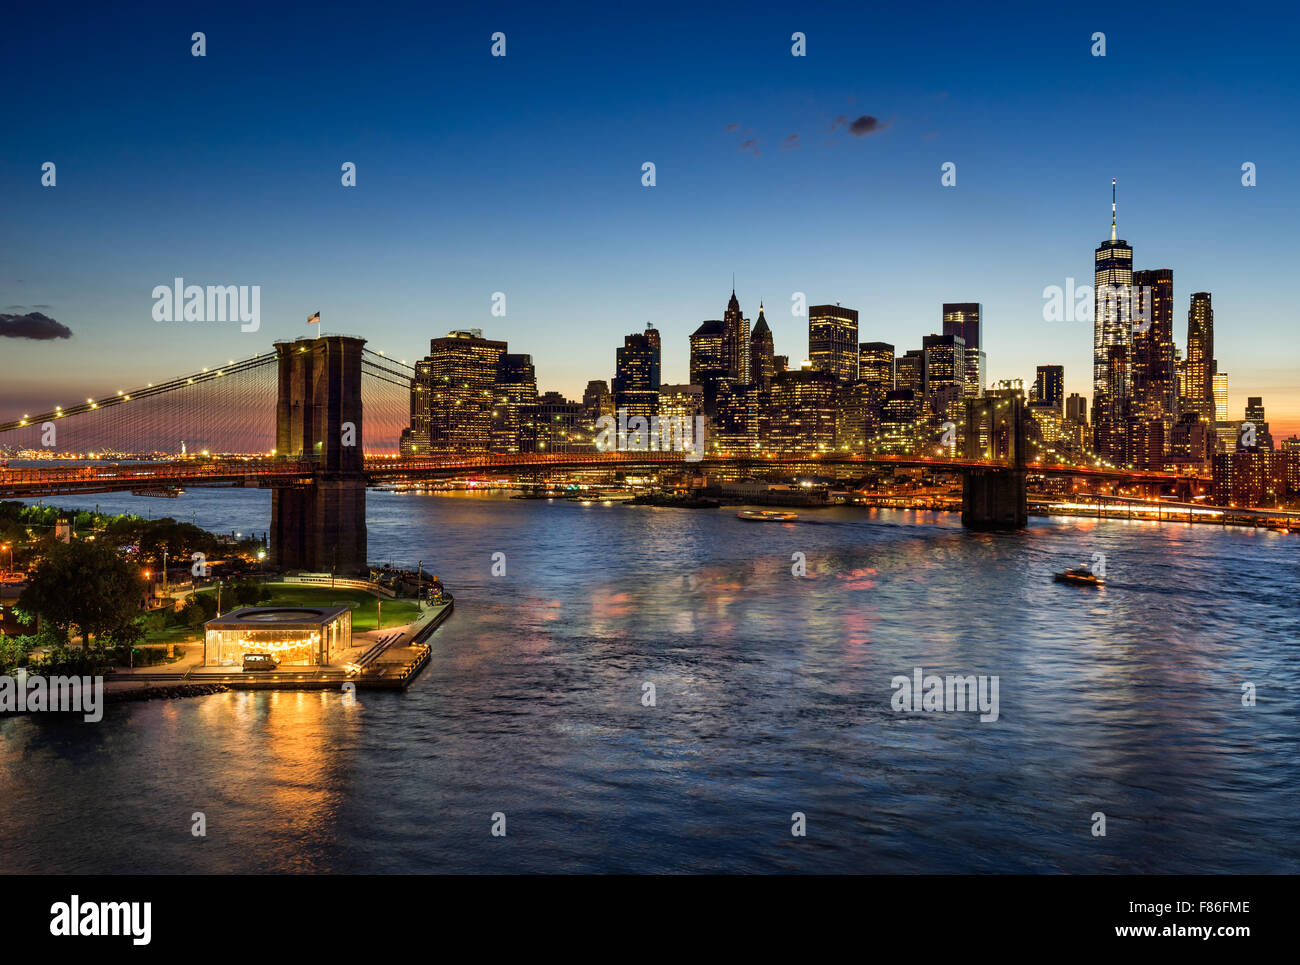 Brooklyn Bridge and illuminated Lower Manhattan at twilight. Financial District skyscrapers reflect in the East - Stock Image